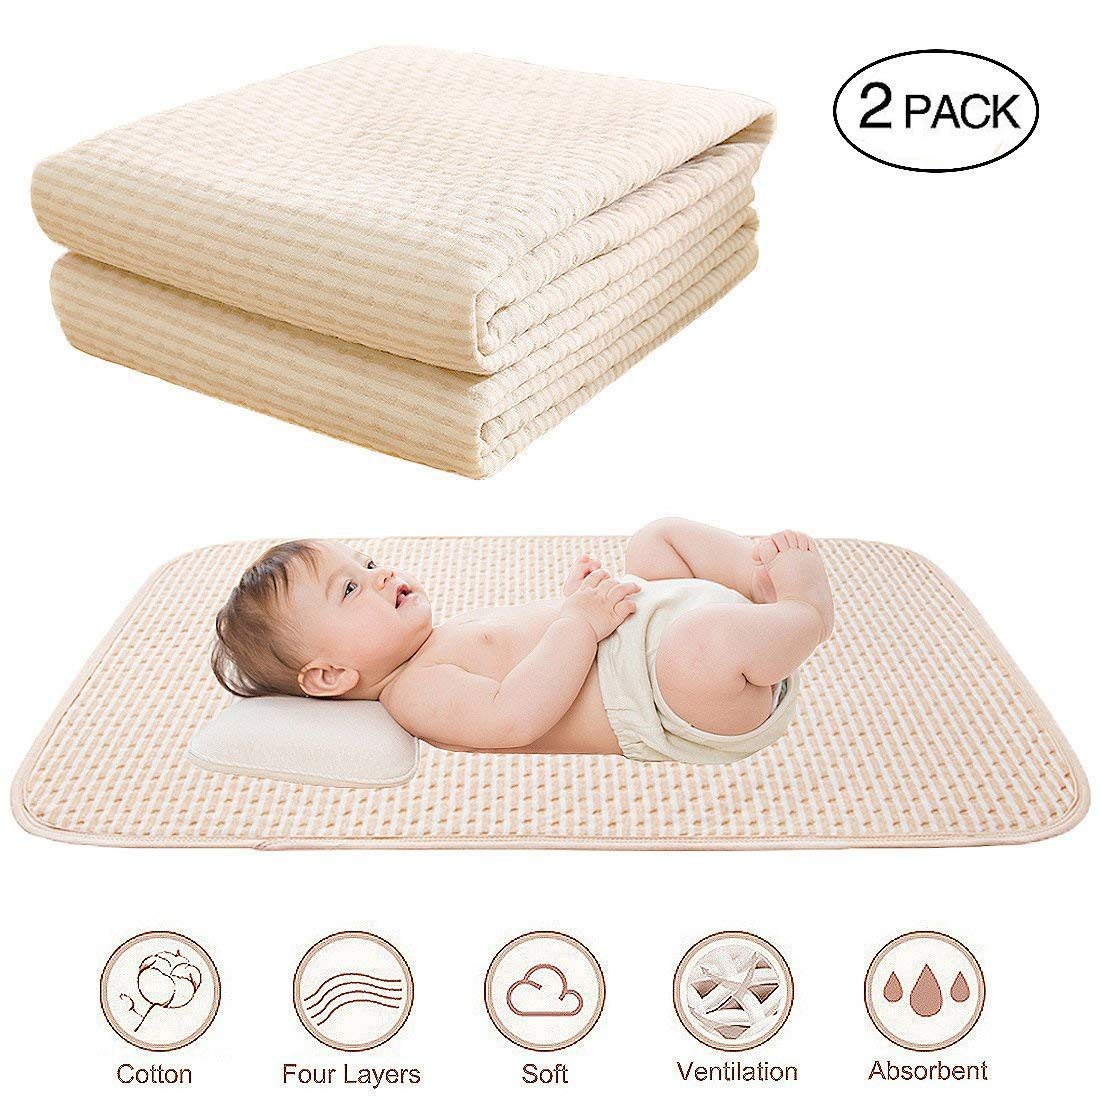 """Baby Waterproof Bed Pad Organic Cotton Mattress Protector Reusable Incontinence 4 Protective Layers Ultra Absorb Sheets for Infants Kids, Size 39.5""""x23.8"""""""